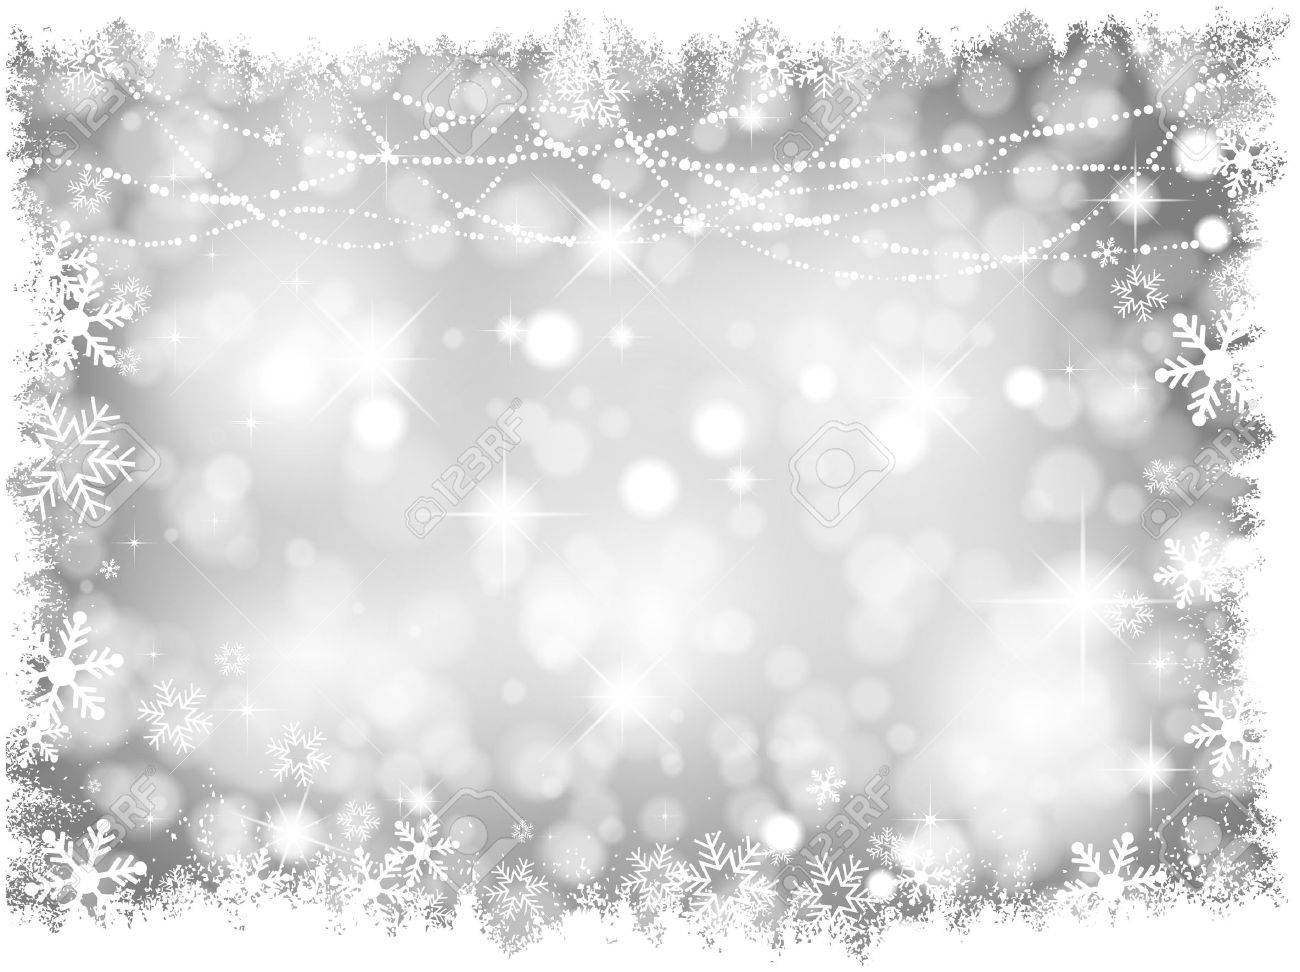 Decorative Silver Lights Christmas Background With Snowy Border ...